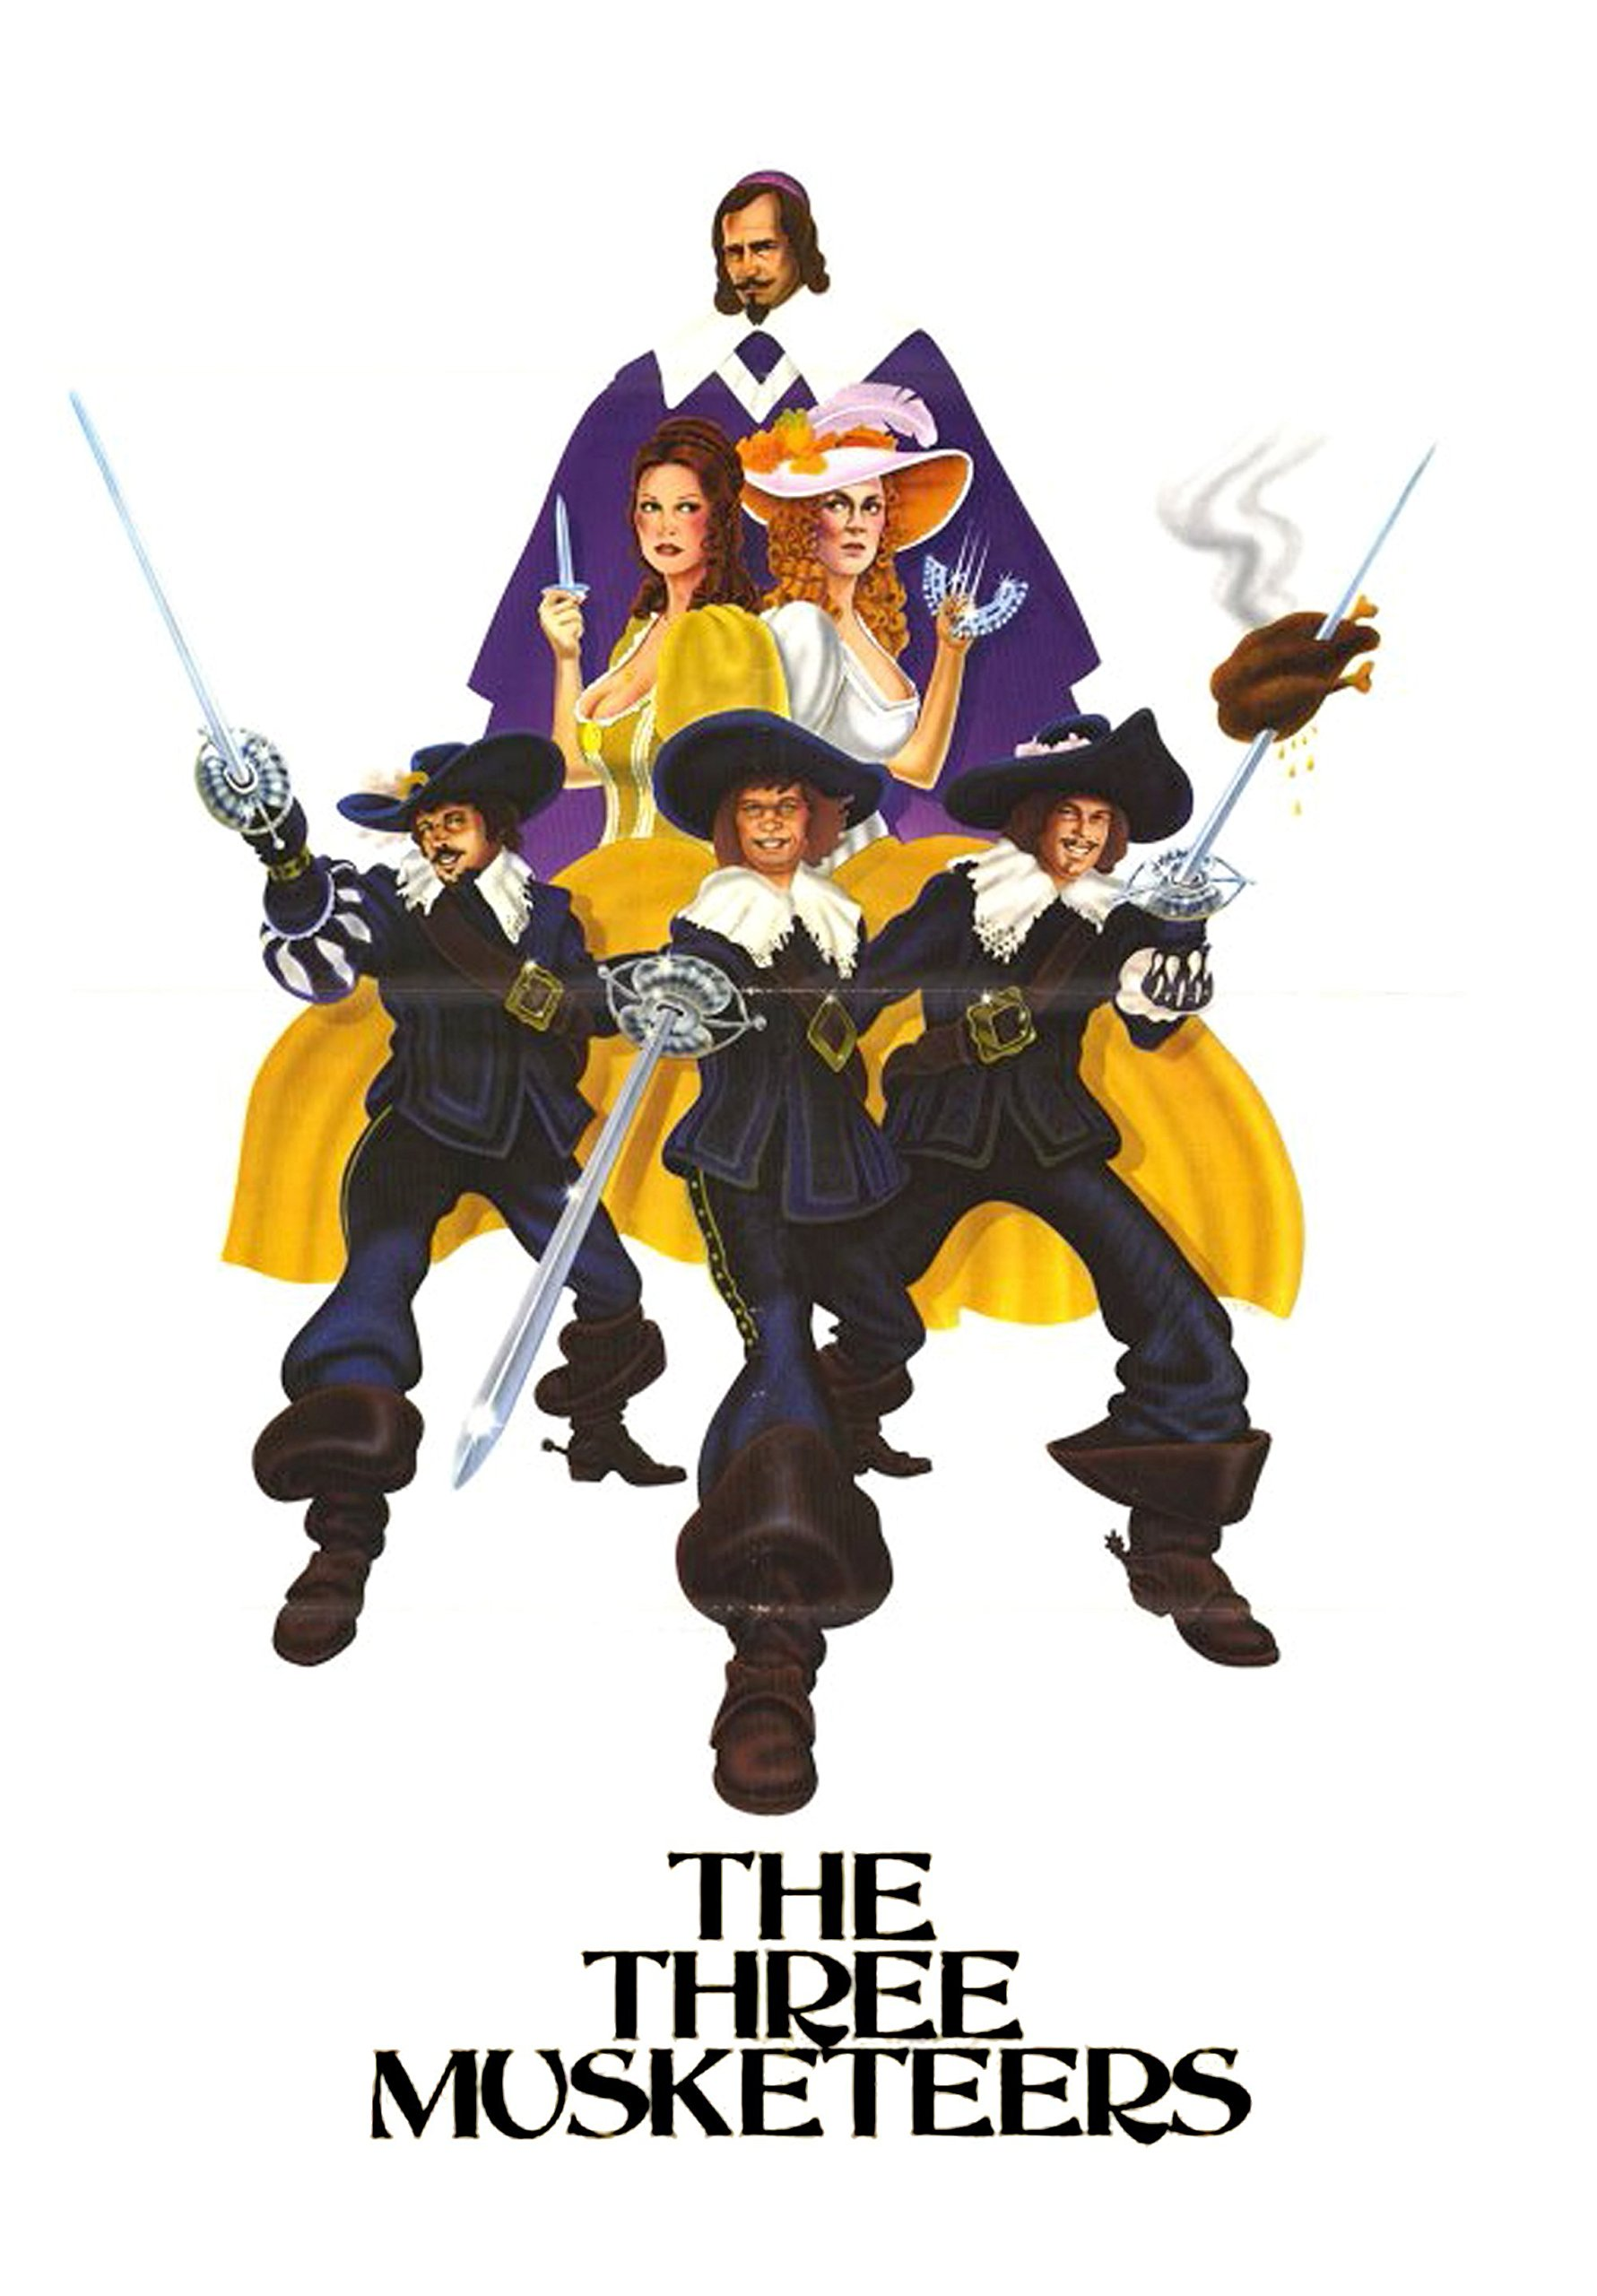 The Three Musketeers (1974) starring Oliver Reed, Raquel Welch, Richard Chamberlain, Michael York, Frank Finlay, Geraldine Chaplin, Charlton Heston, Faye Dunaway, Christopher Lee